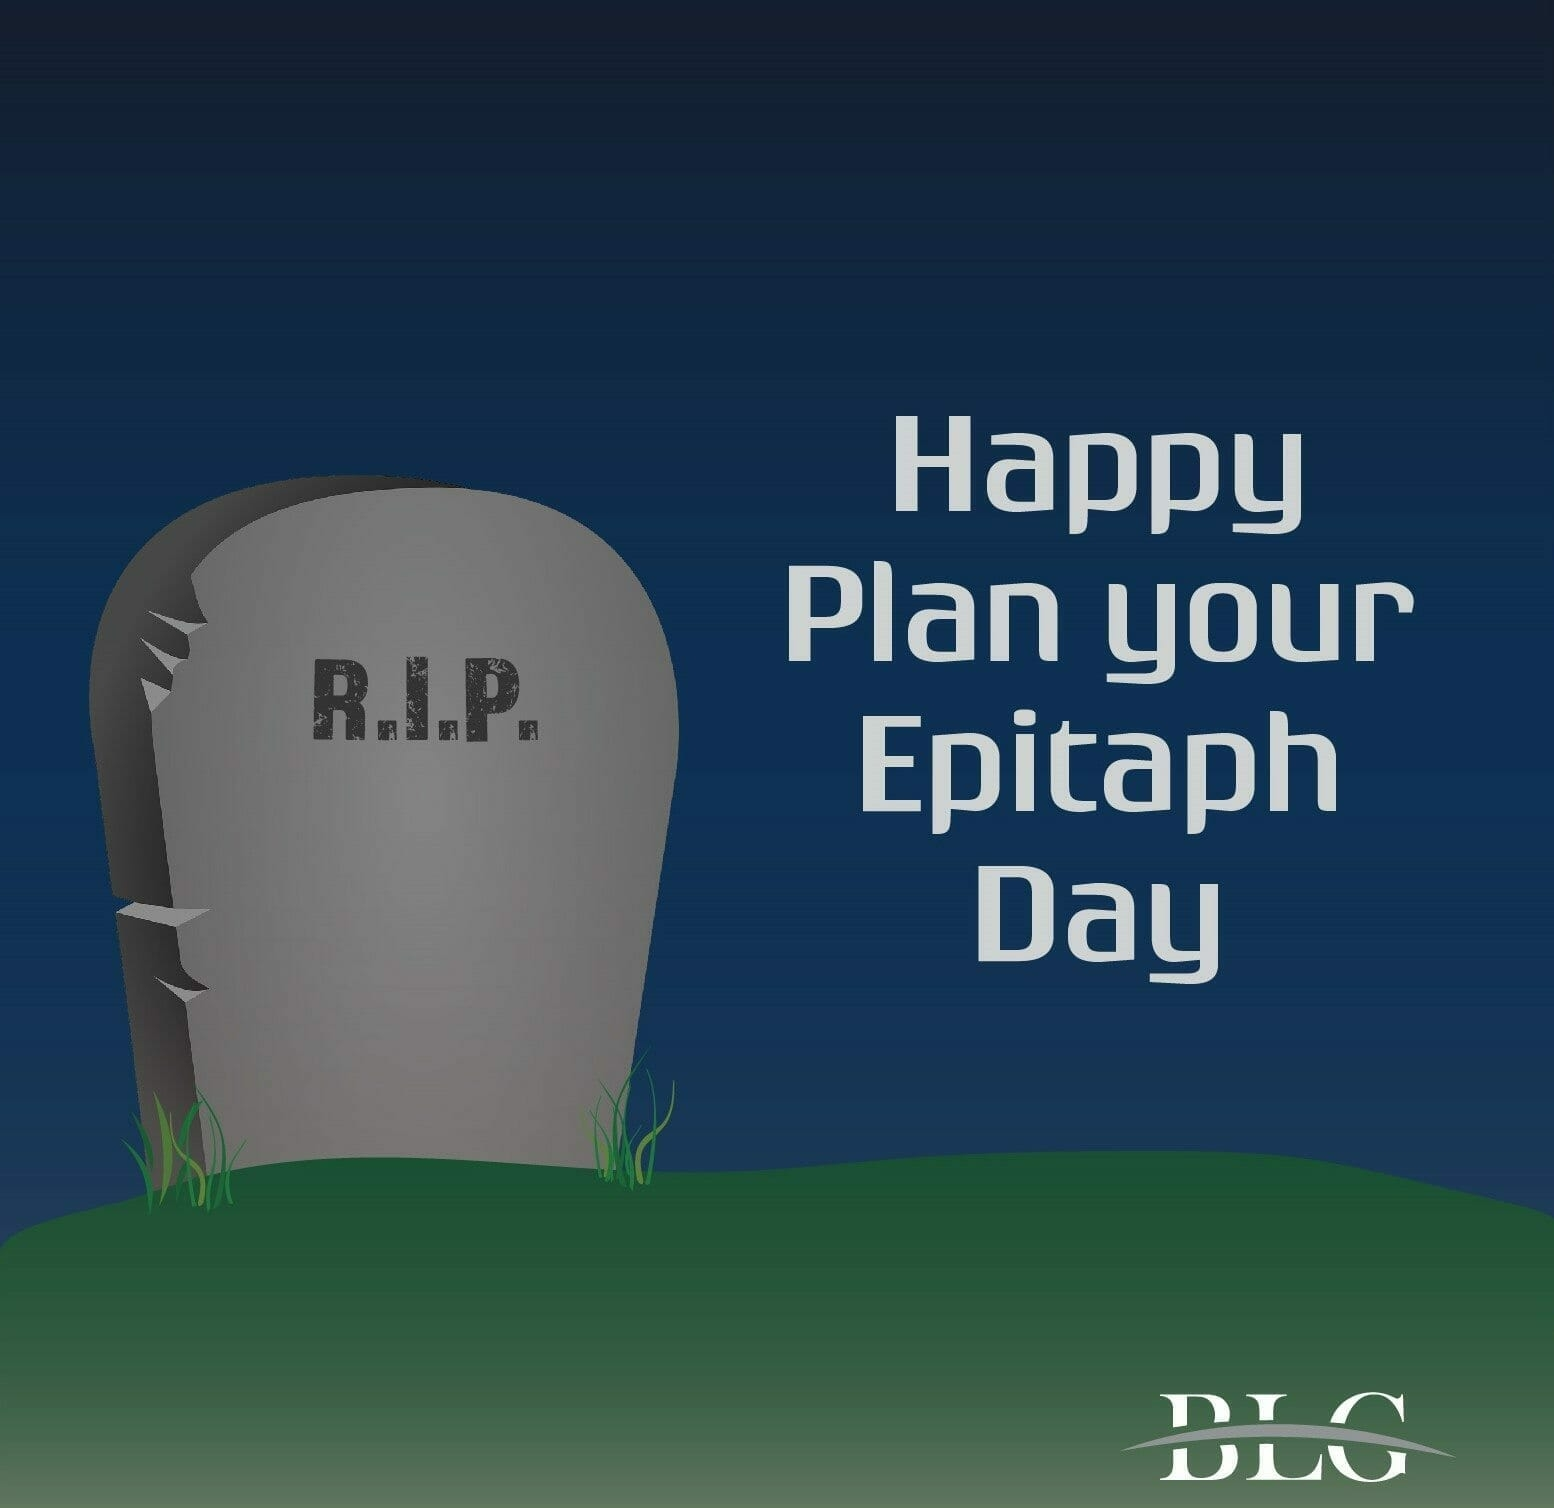 Happy Plan Your Epitaph Day From Brandon Legal Group Brandon Legal